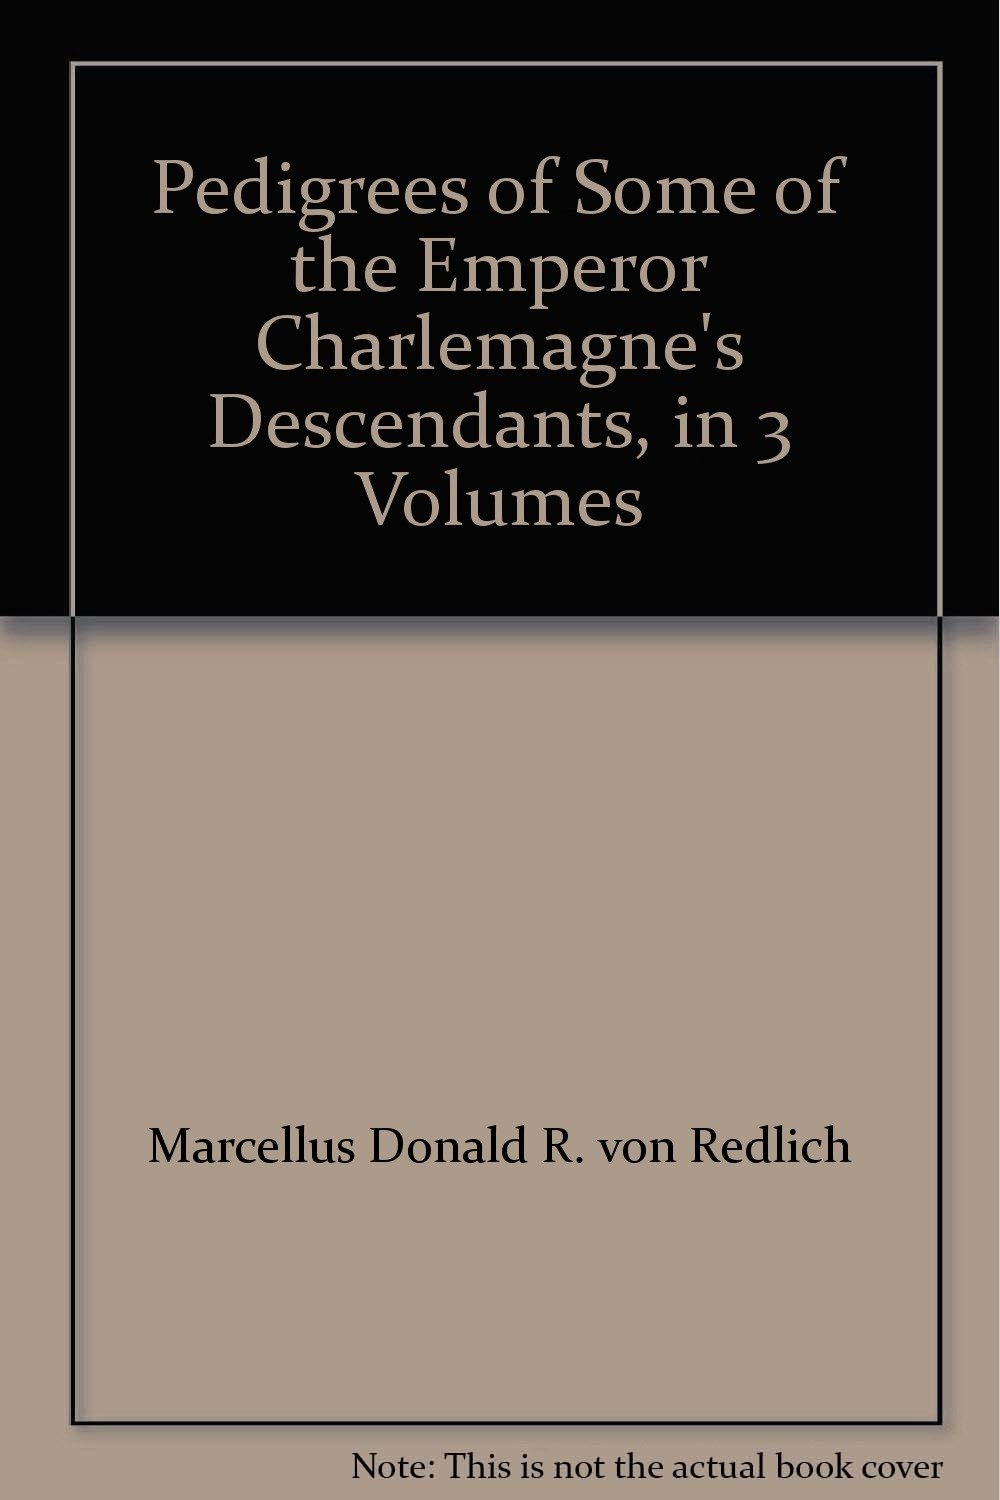 Pedigrees of Some of the Emperor Charlemagne's Descendants, in 3 Volumes  Hardcover – 1988